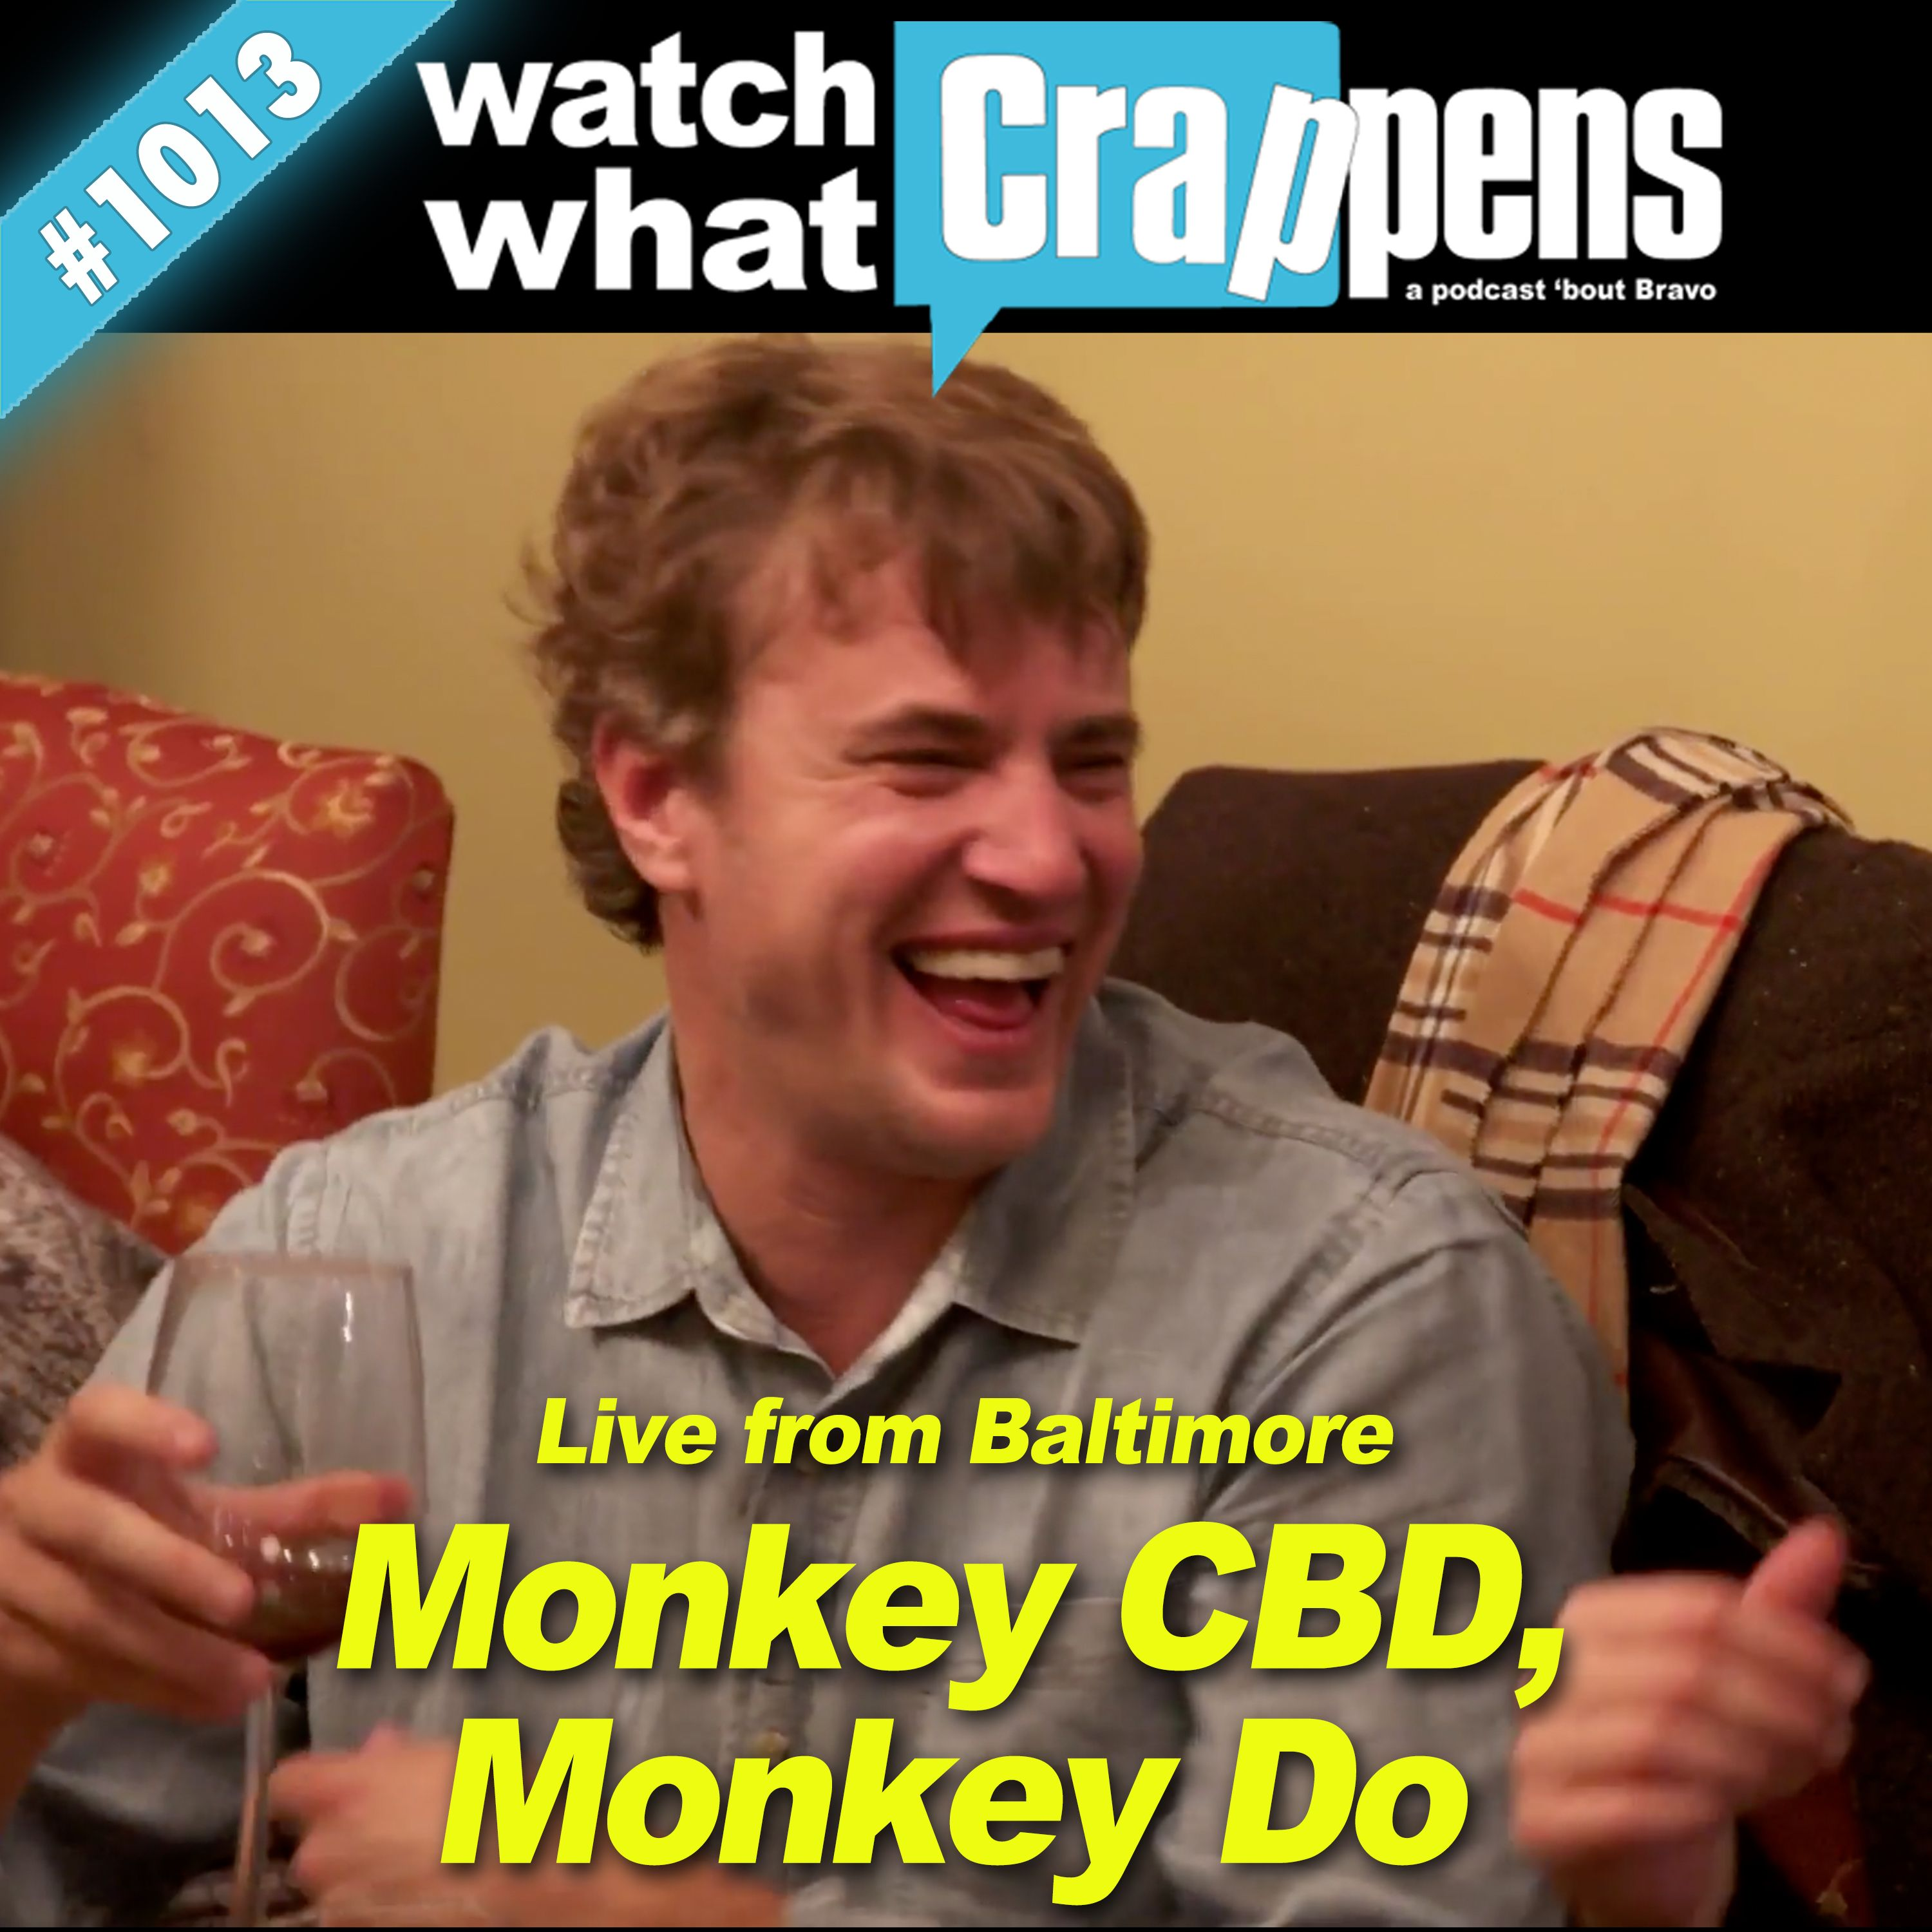 SouthernCharm: Monkey CBD, Monkey Do - Live from Baltimore